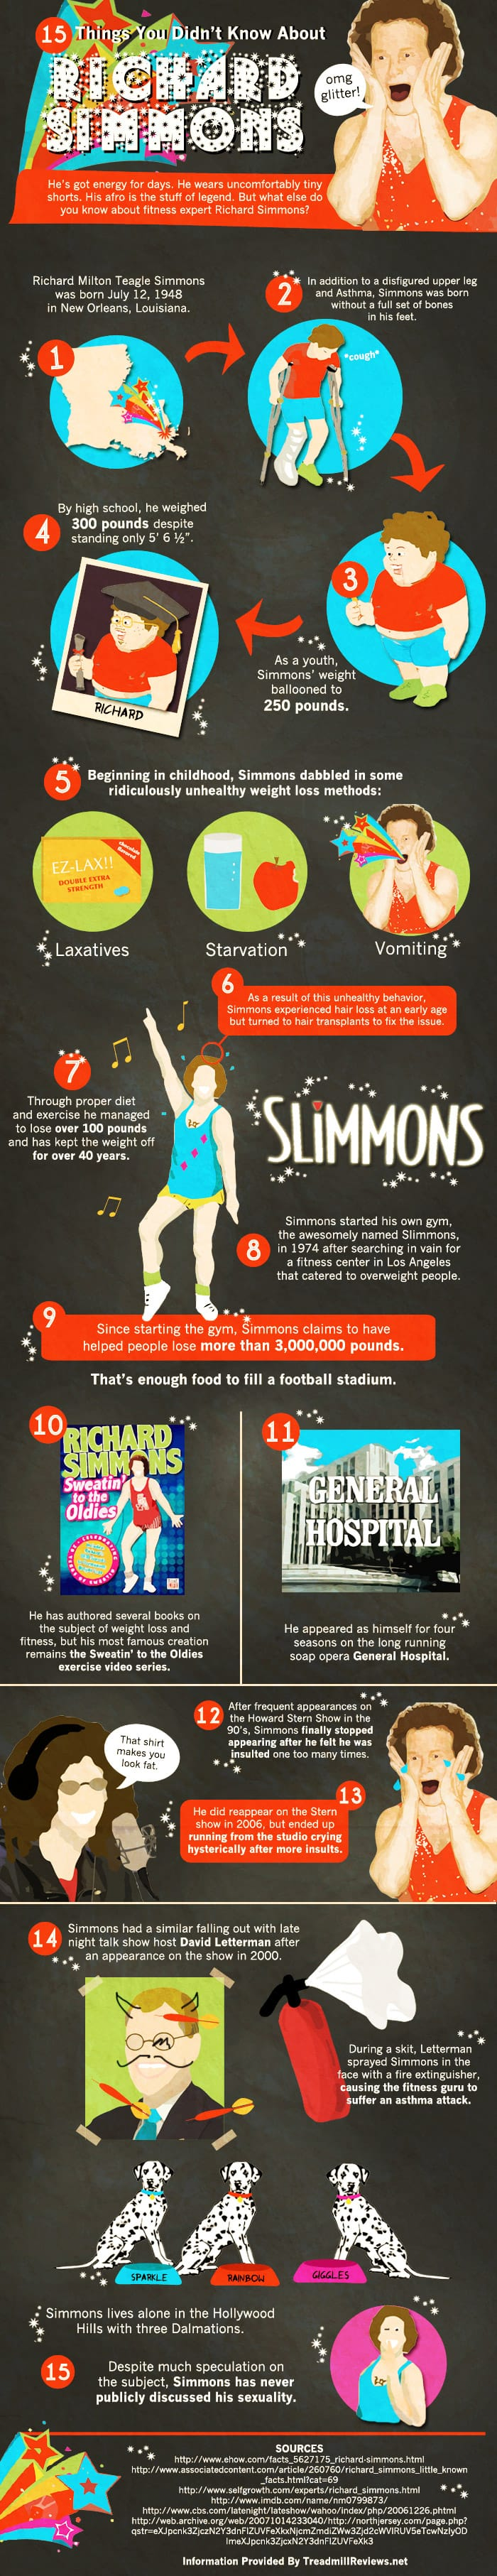 Facts About Richard Simmons - Infographic.